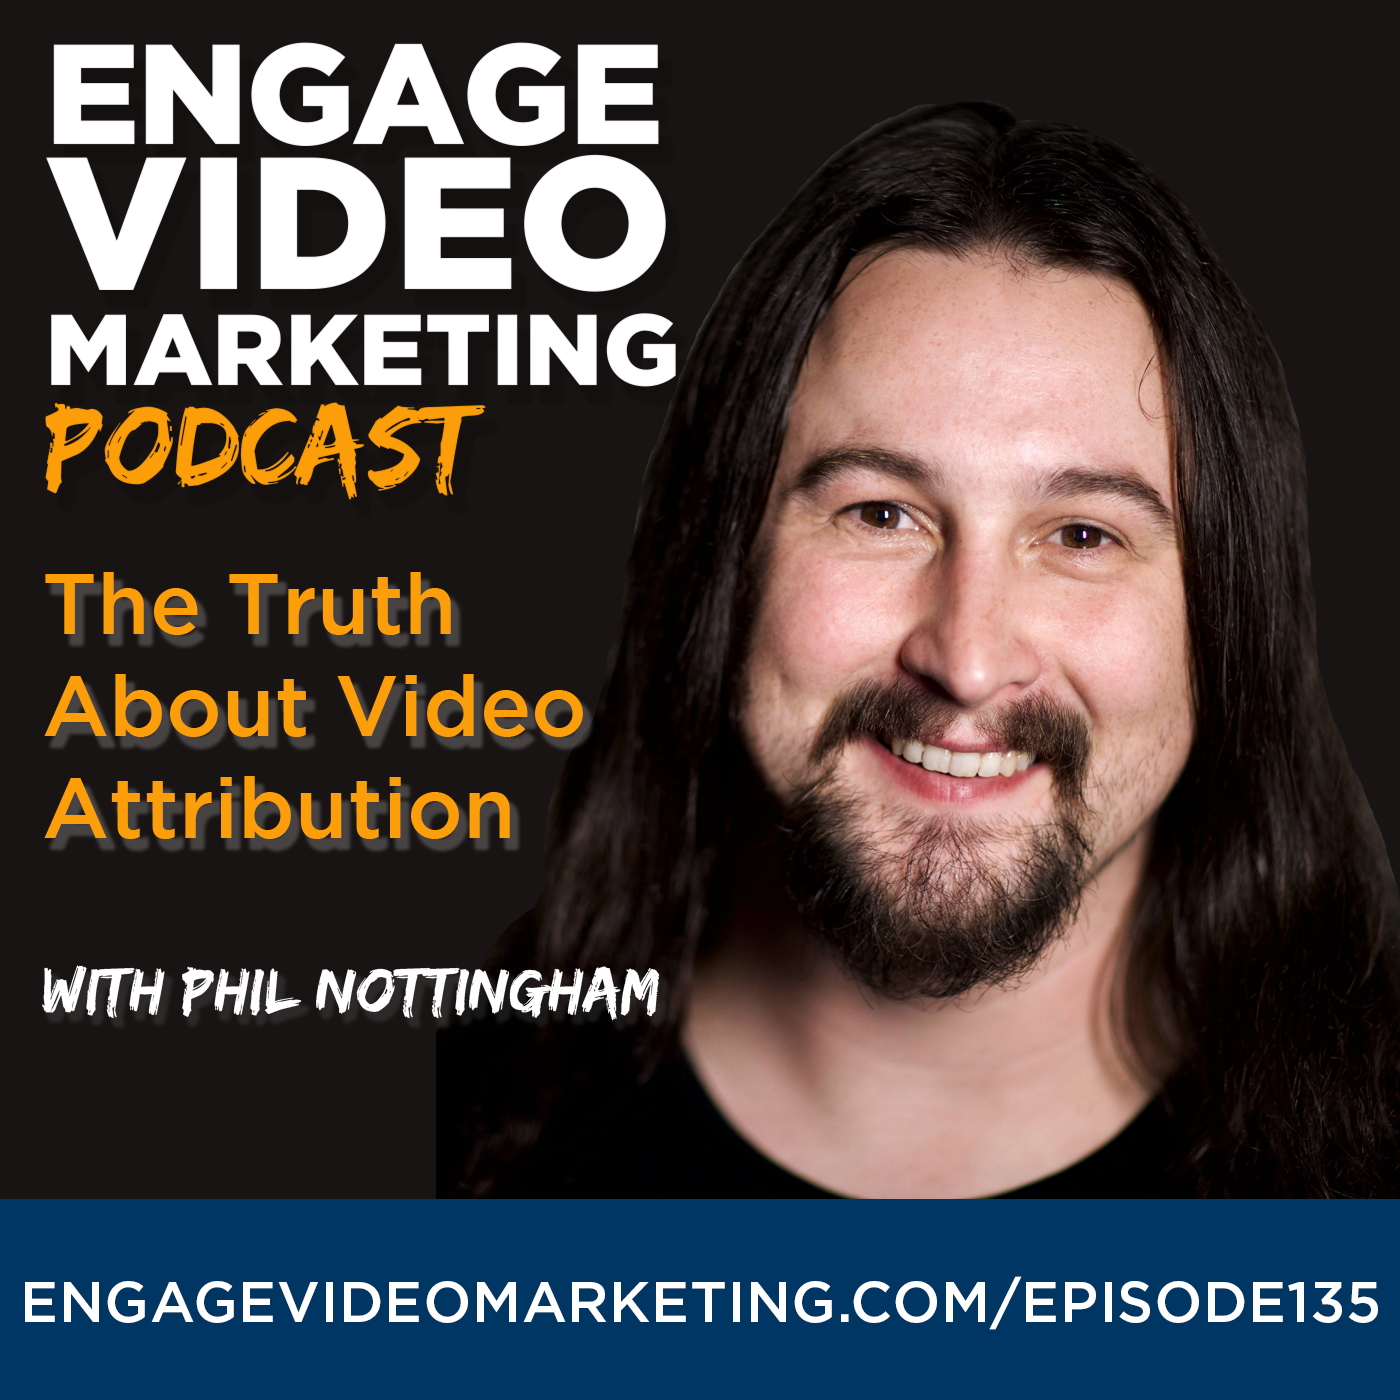 The Truth About Video Attribution with Phil Nottingham